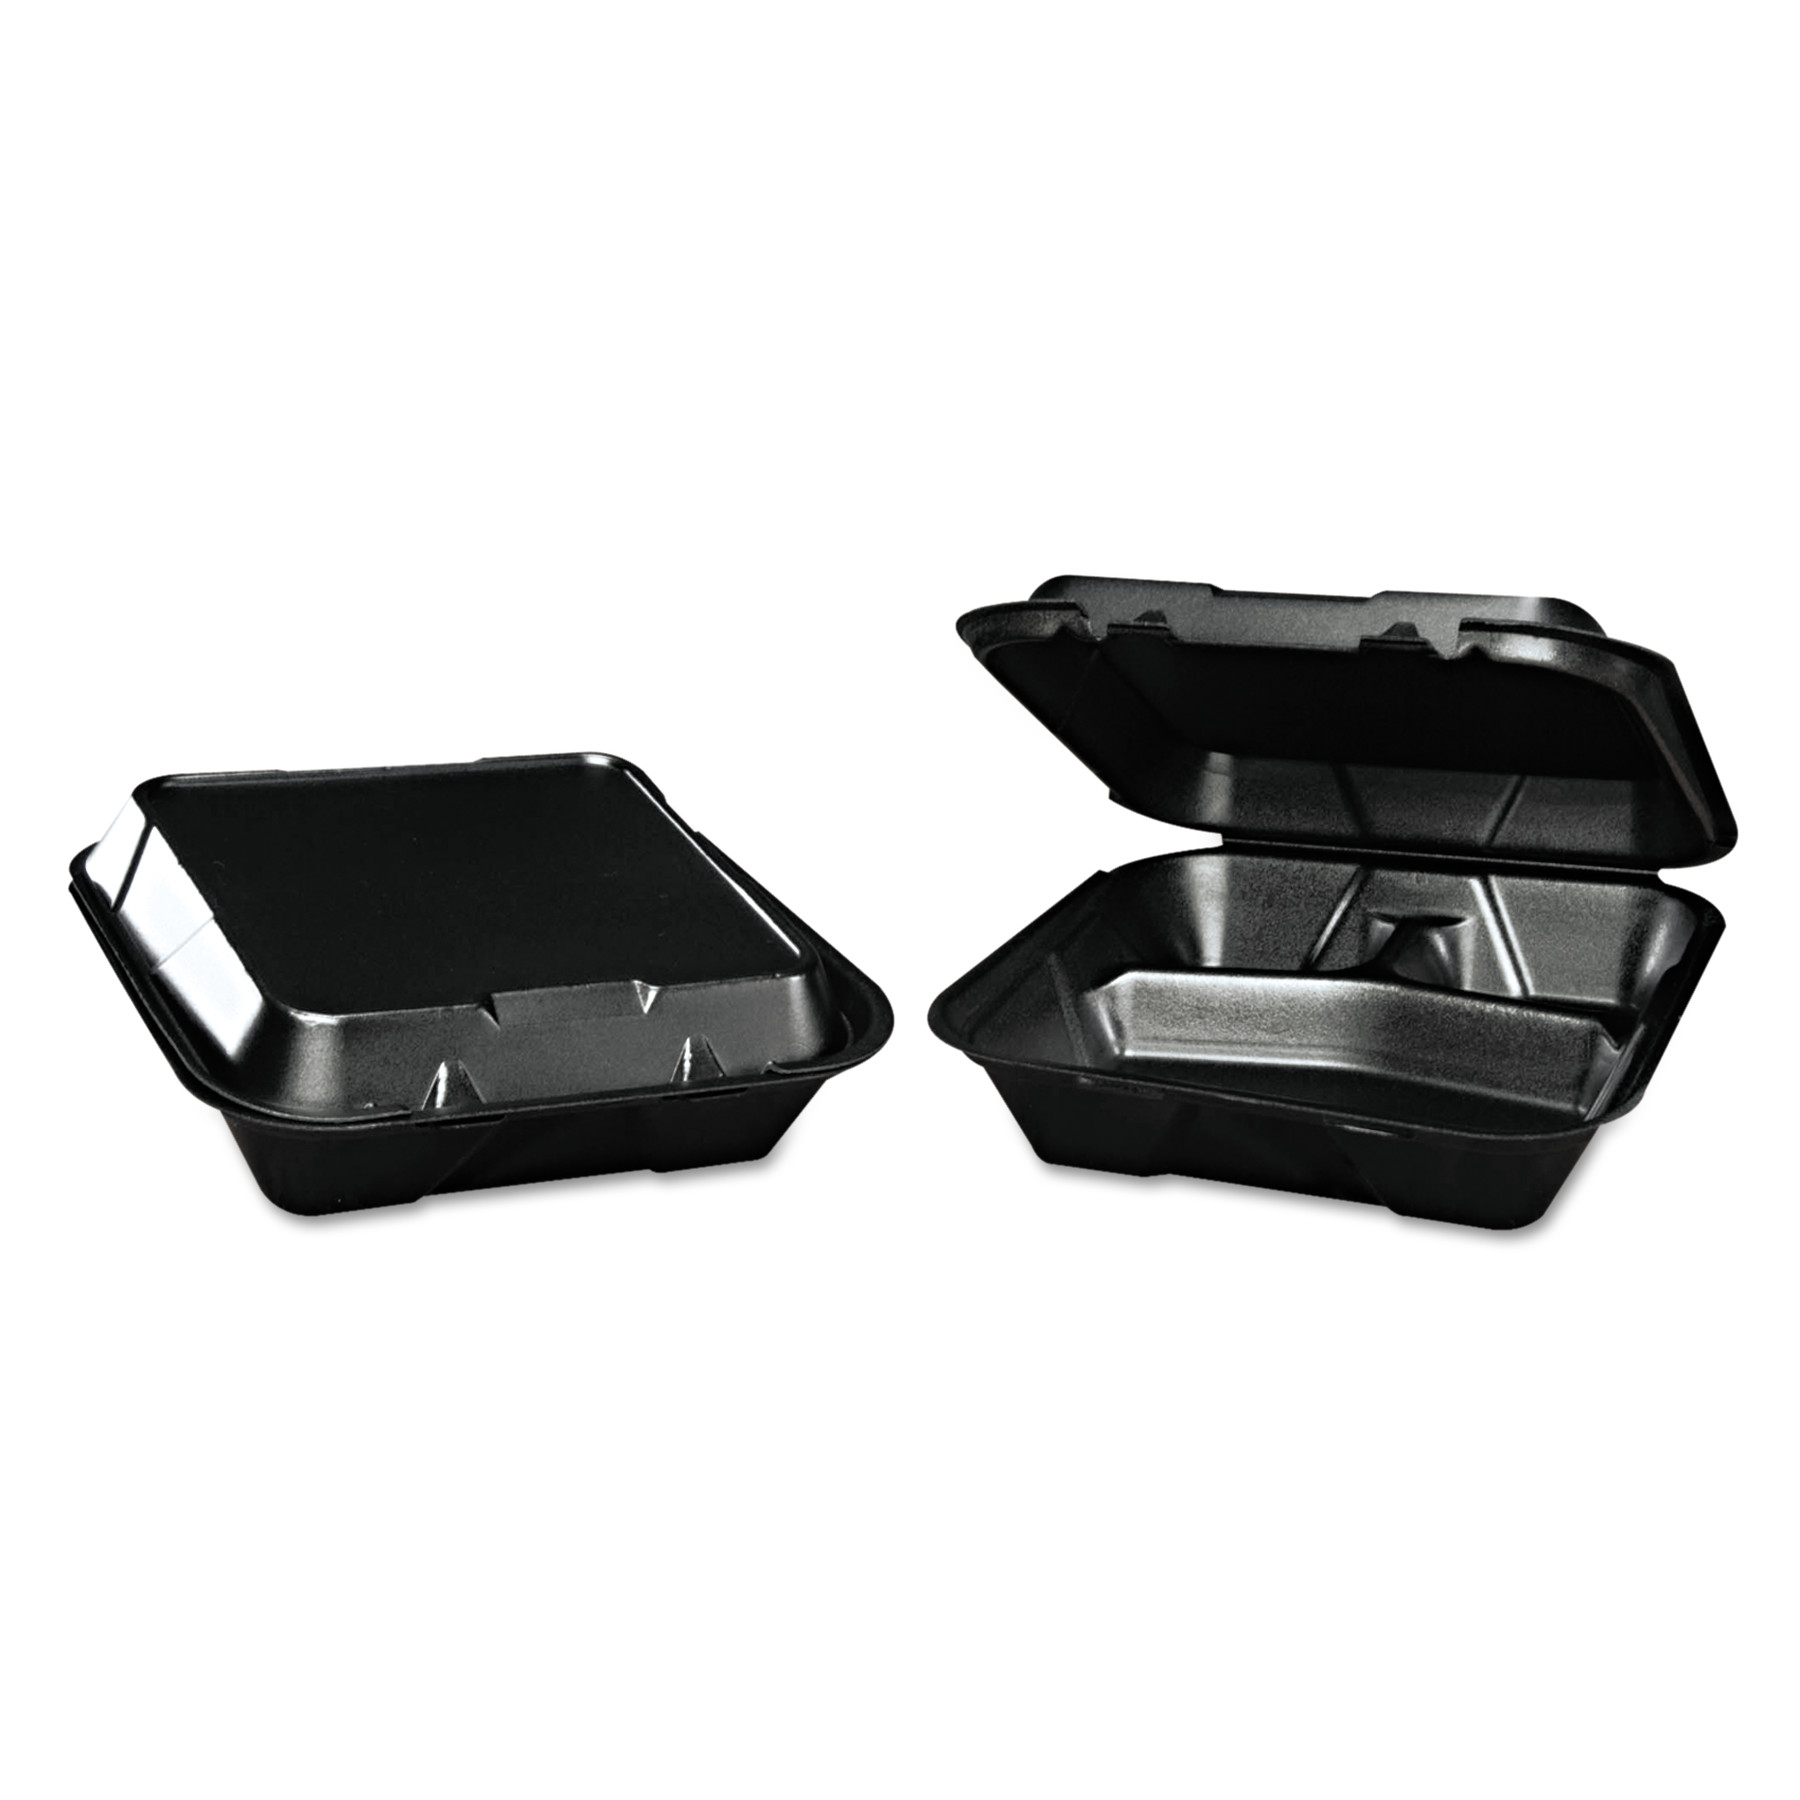 Genpak Snap-It 3-Compartment Foam Hinged Containers, Black, 200 count